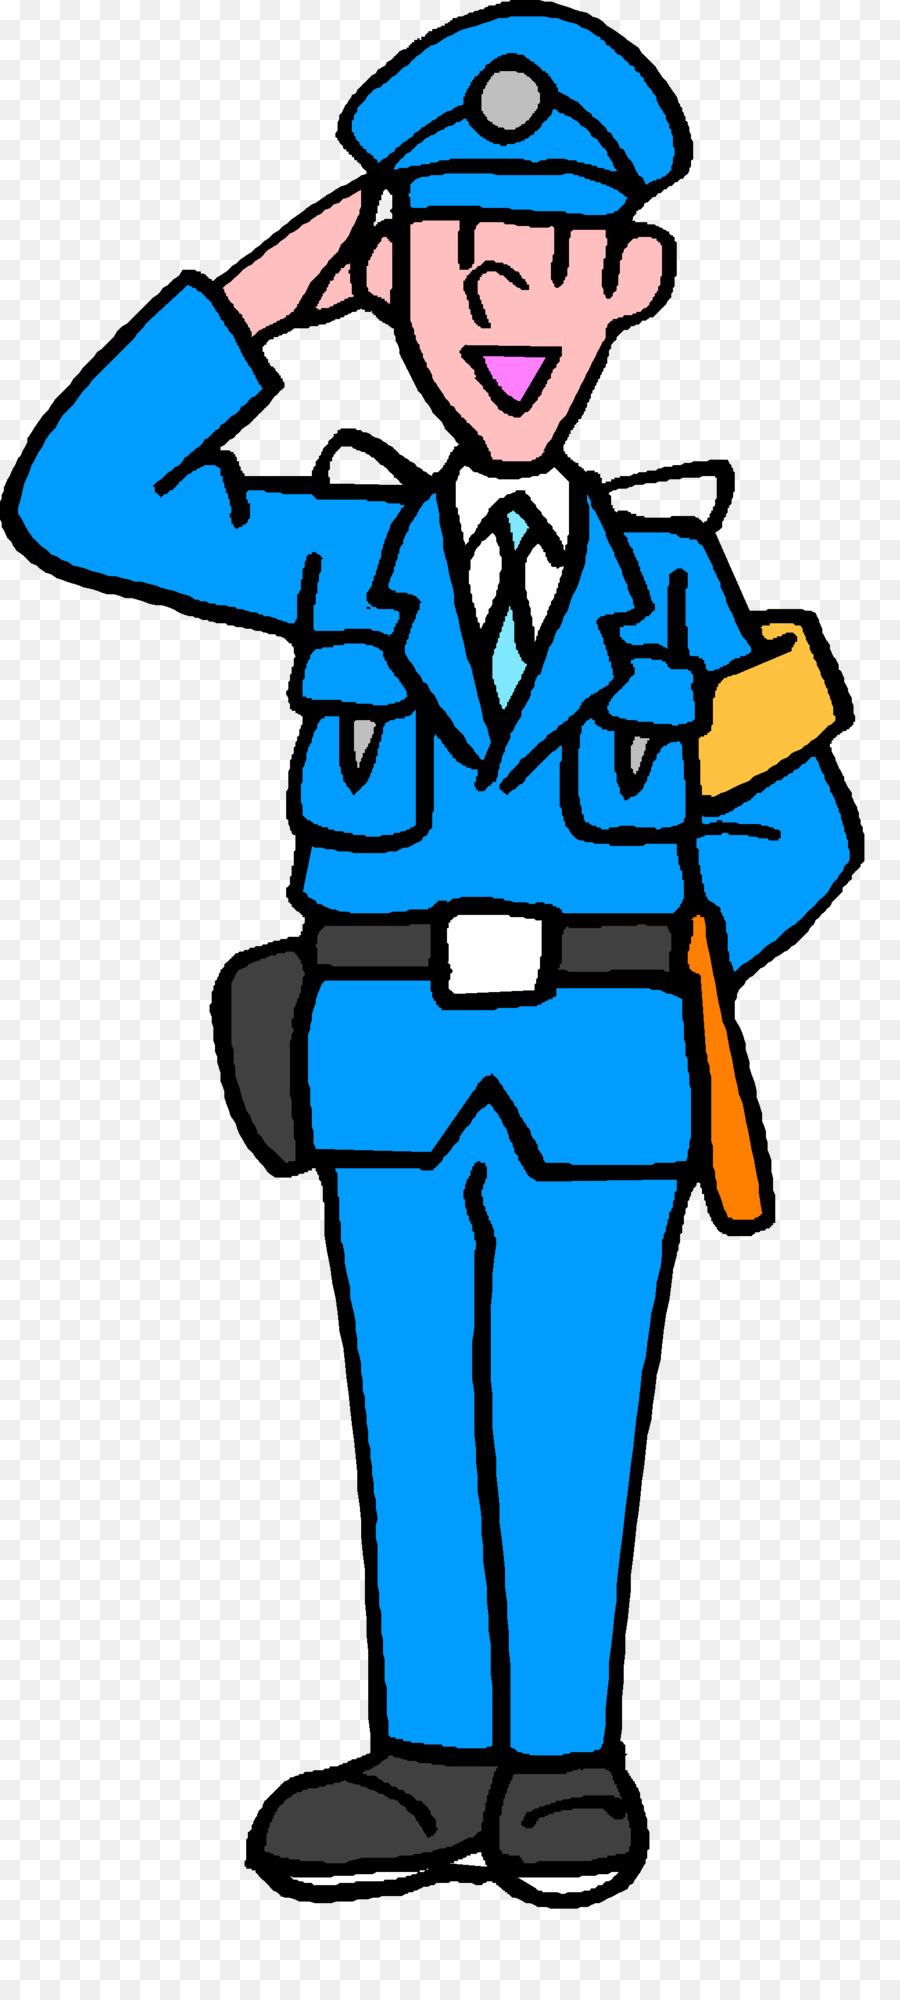 security guard police officer crossing guard clip art policeman rh kisspng com clipart police star badges clip art police car